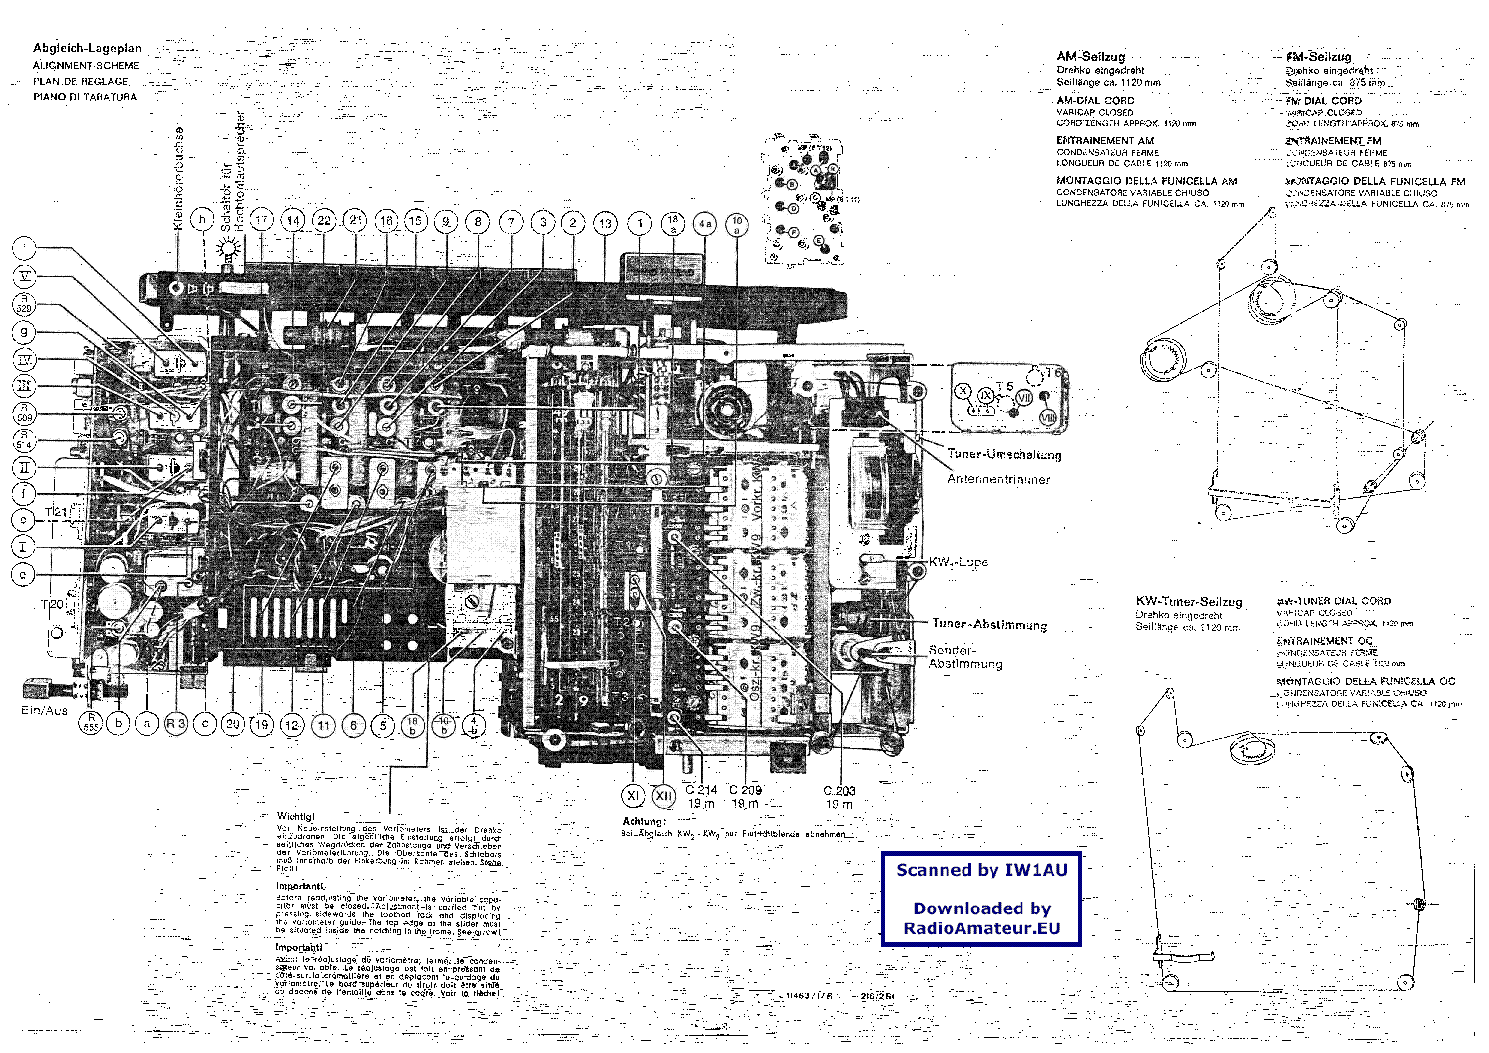 GRUNDIG SATELLIT-1000 Service Manual download, schematics